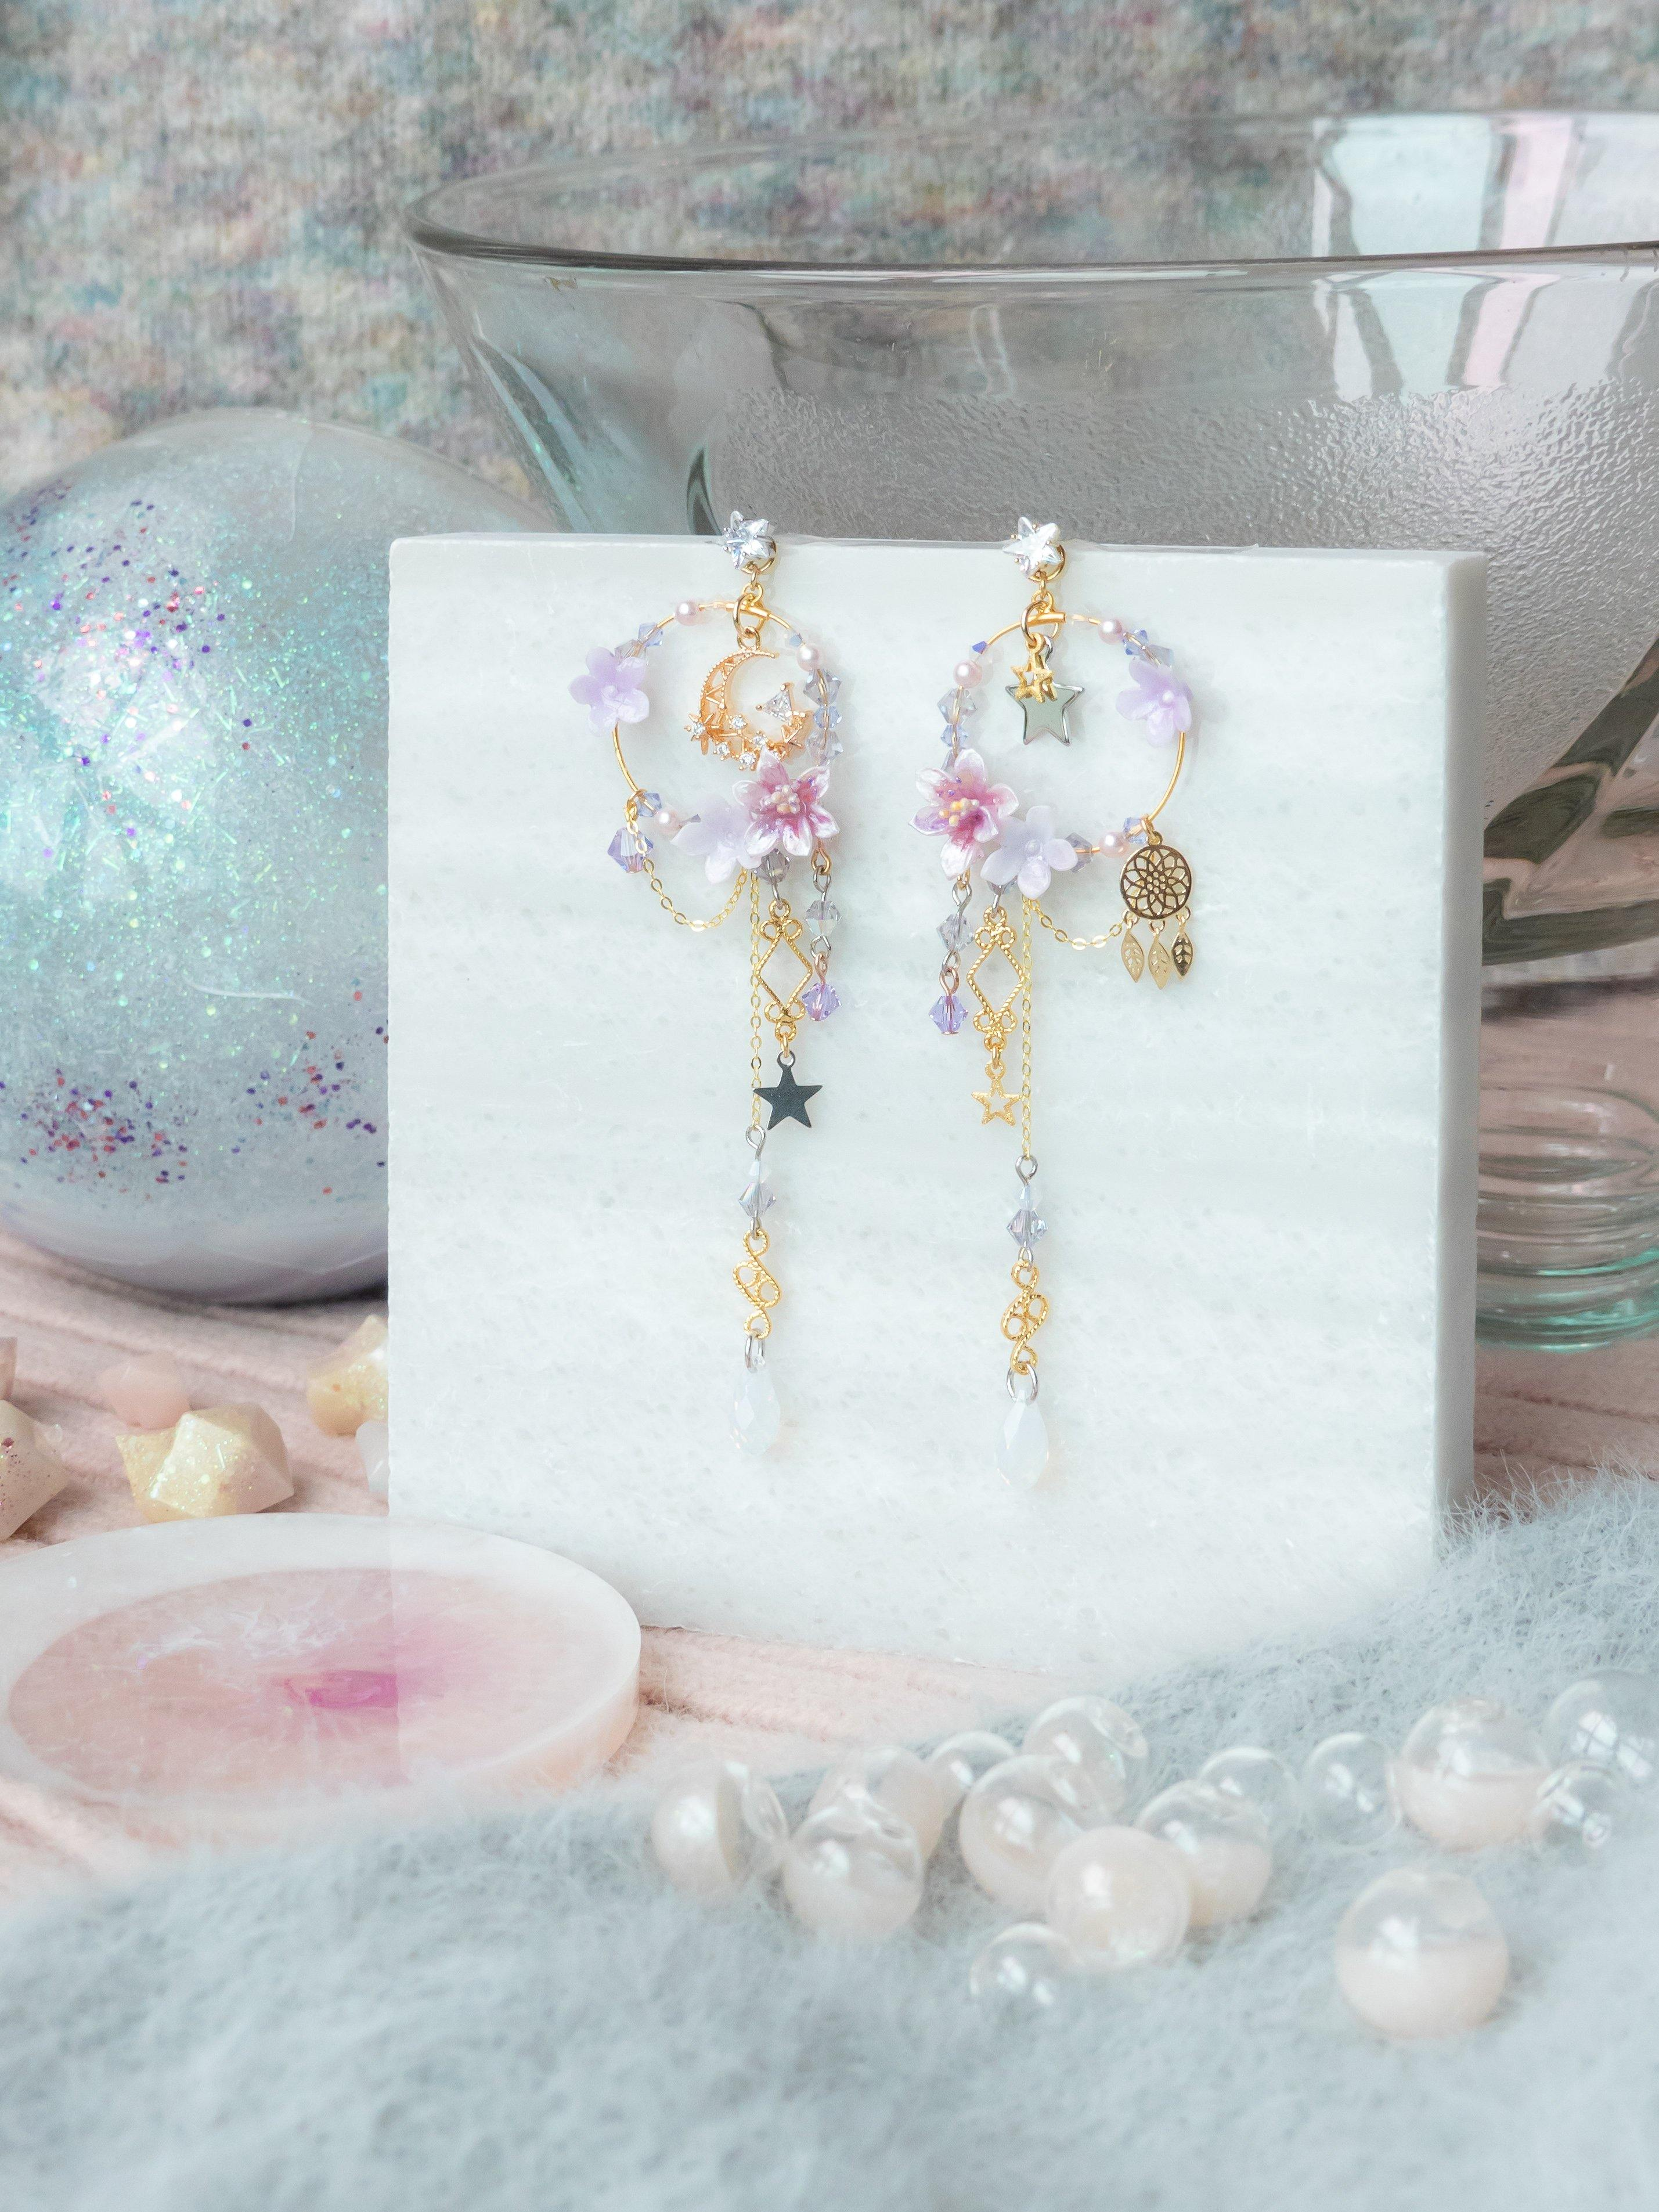 #12 ZODIAC Capricorn Lily by the windows 14K Gold-plated 925 Silver Earrings - Pamycarie Hong Kong